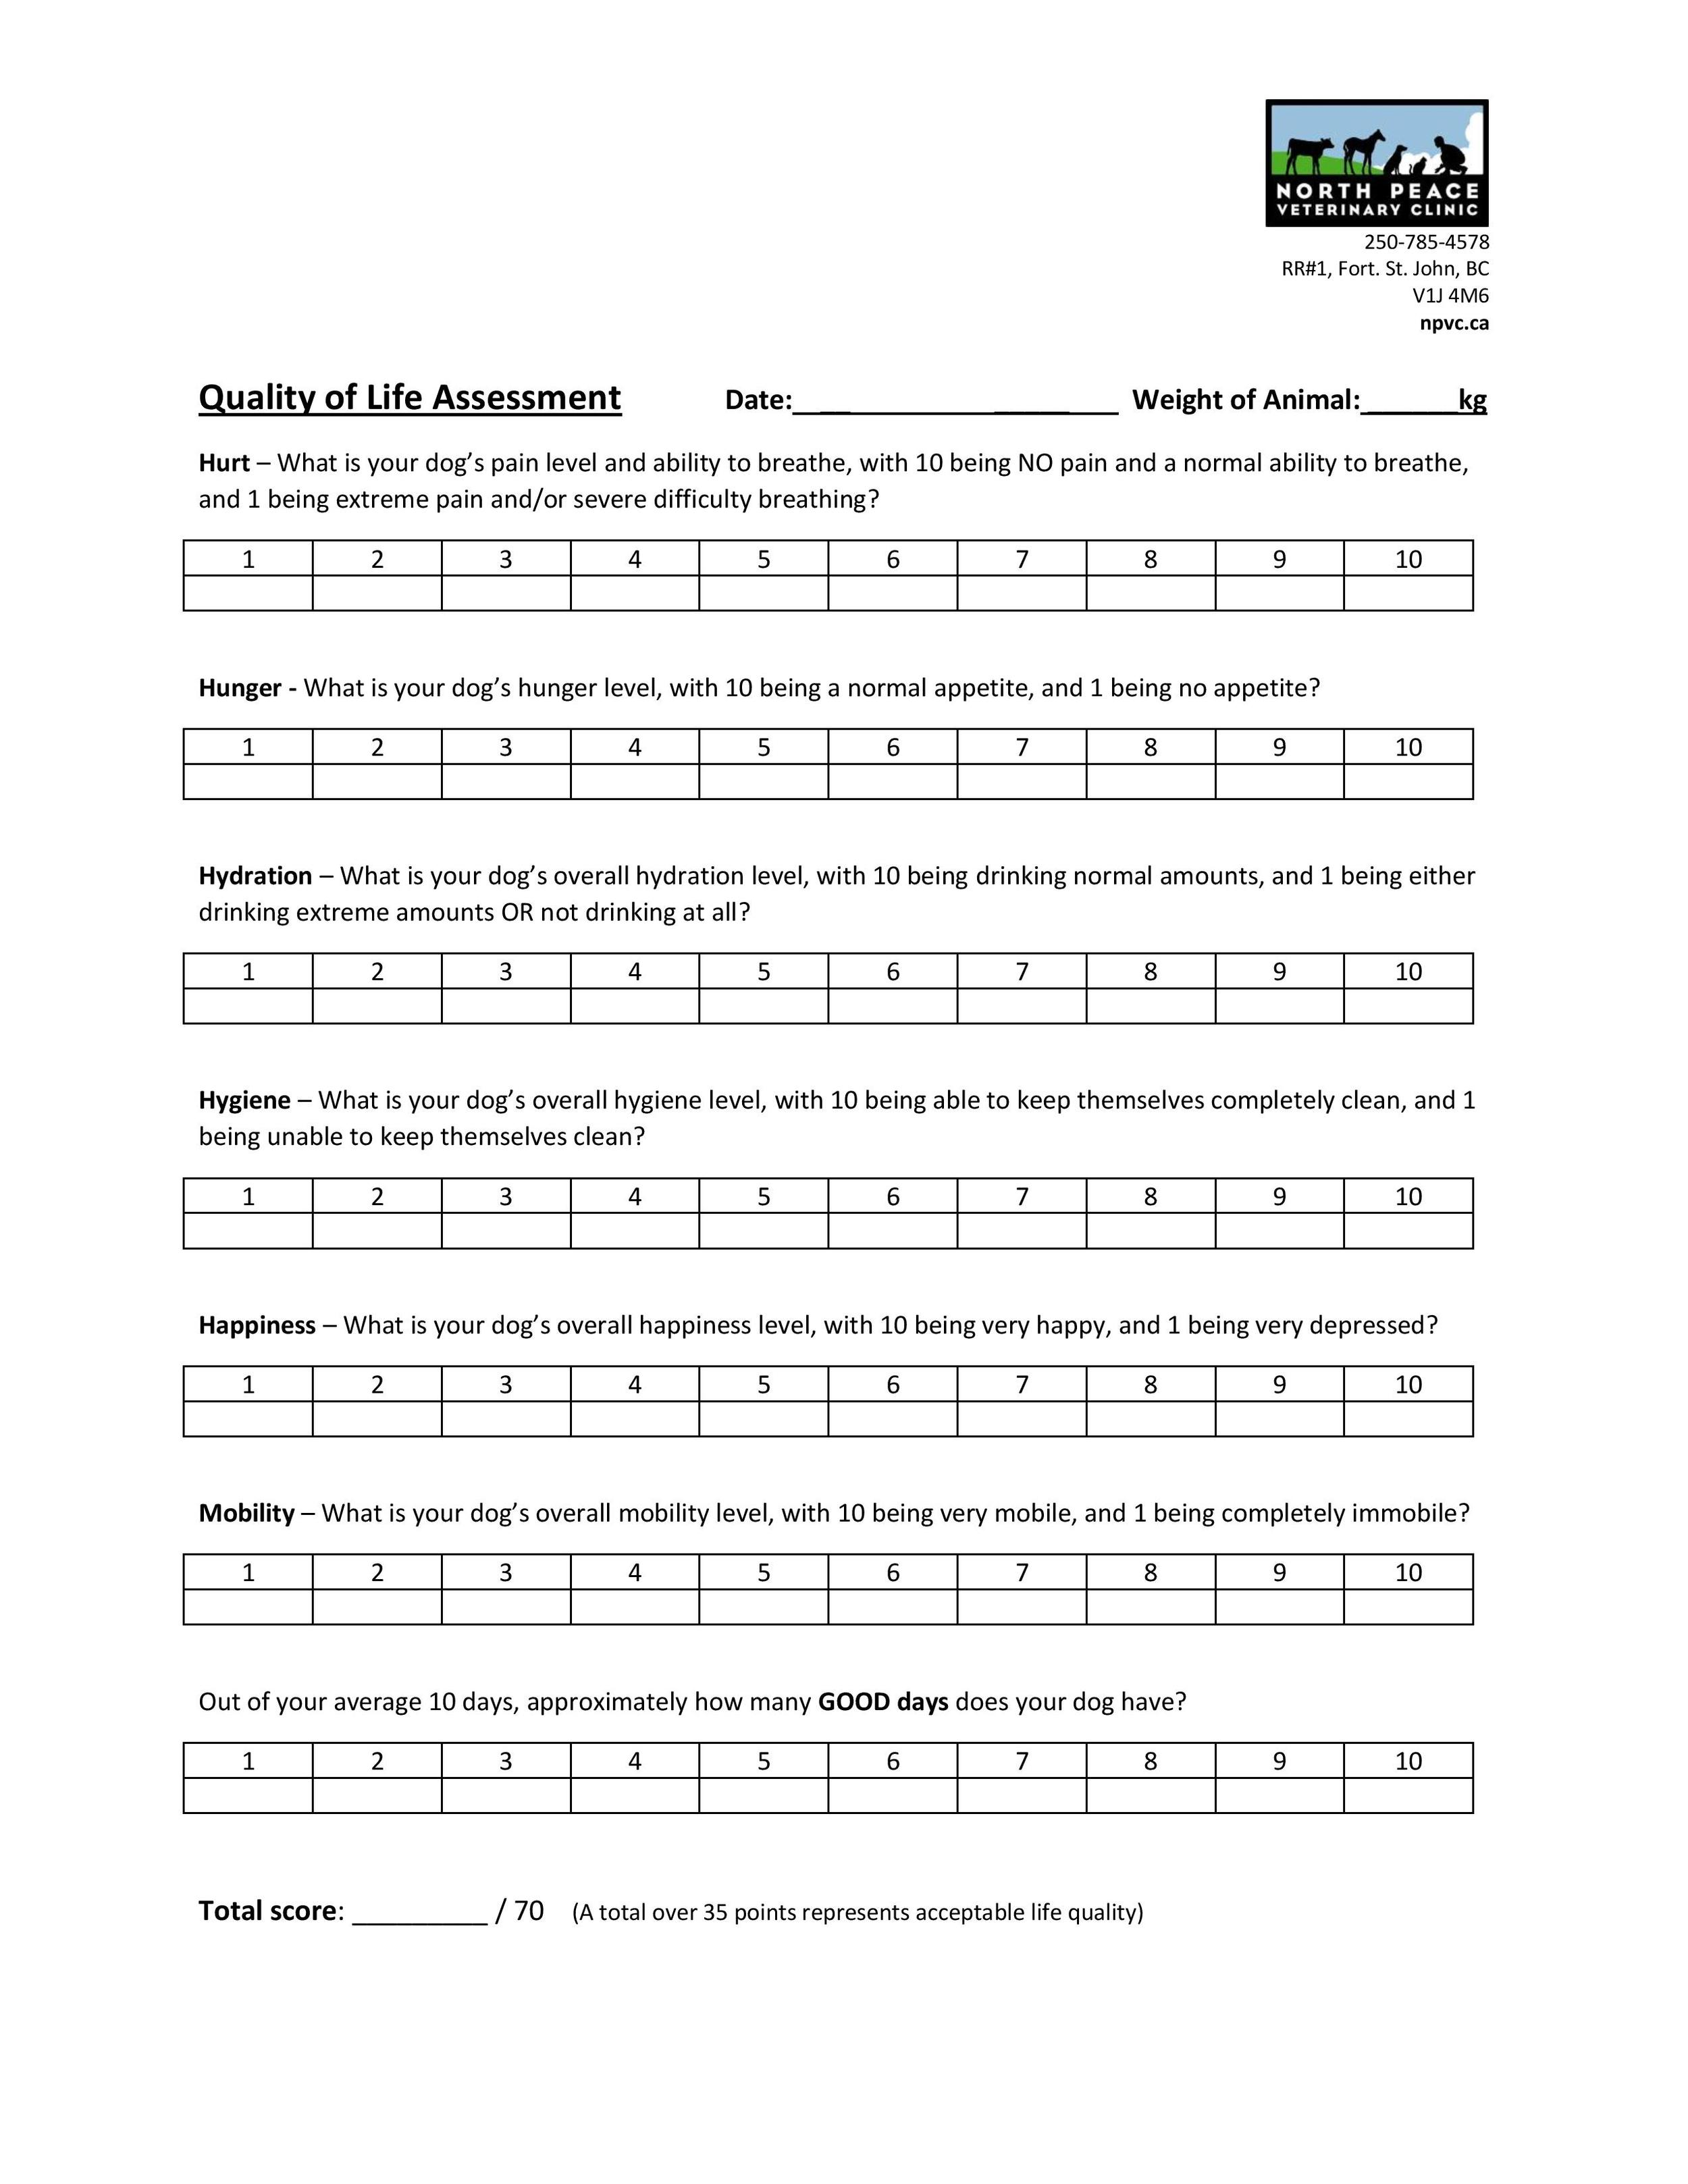 Quality of Life Assessment-page-001.jpg